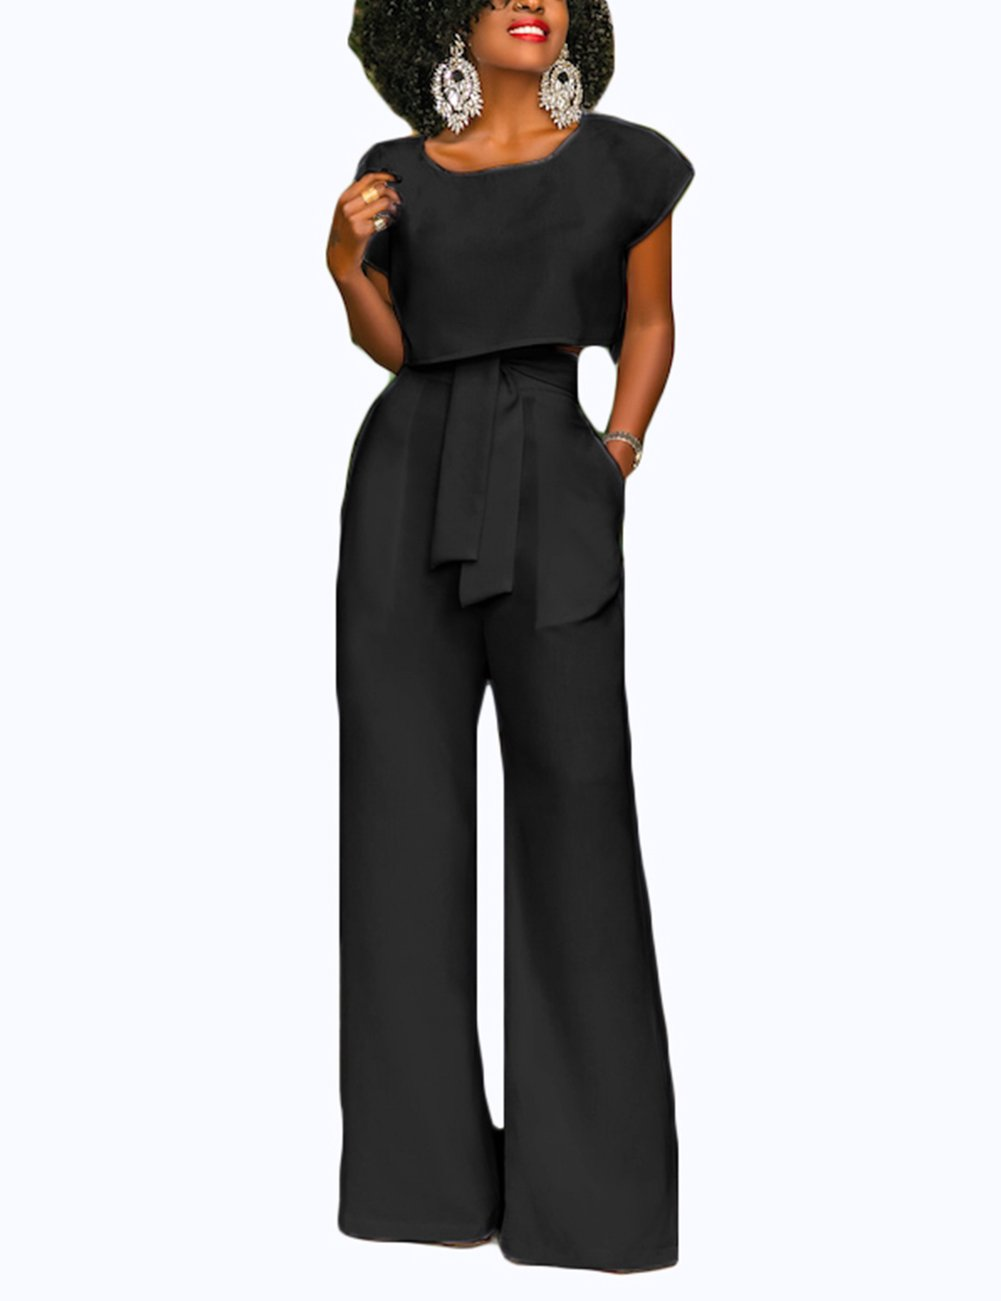 CINDYLOVER Women's Pantsuits Long Fitted Romper Pants with Pocket Day Suit Black L